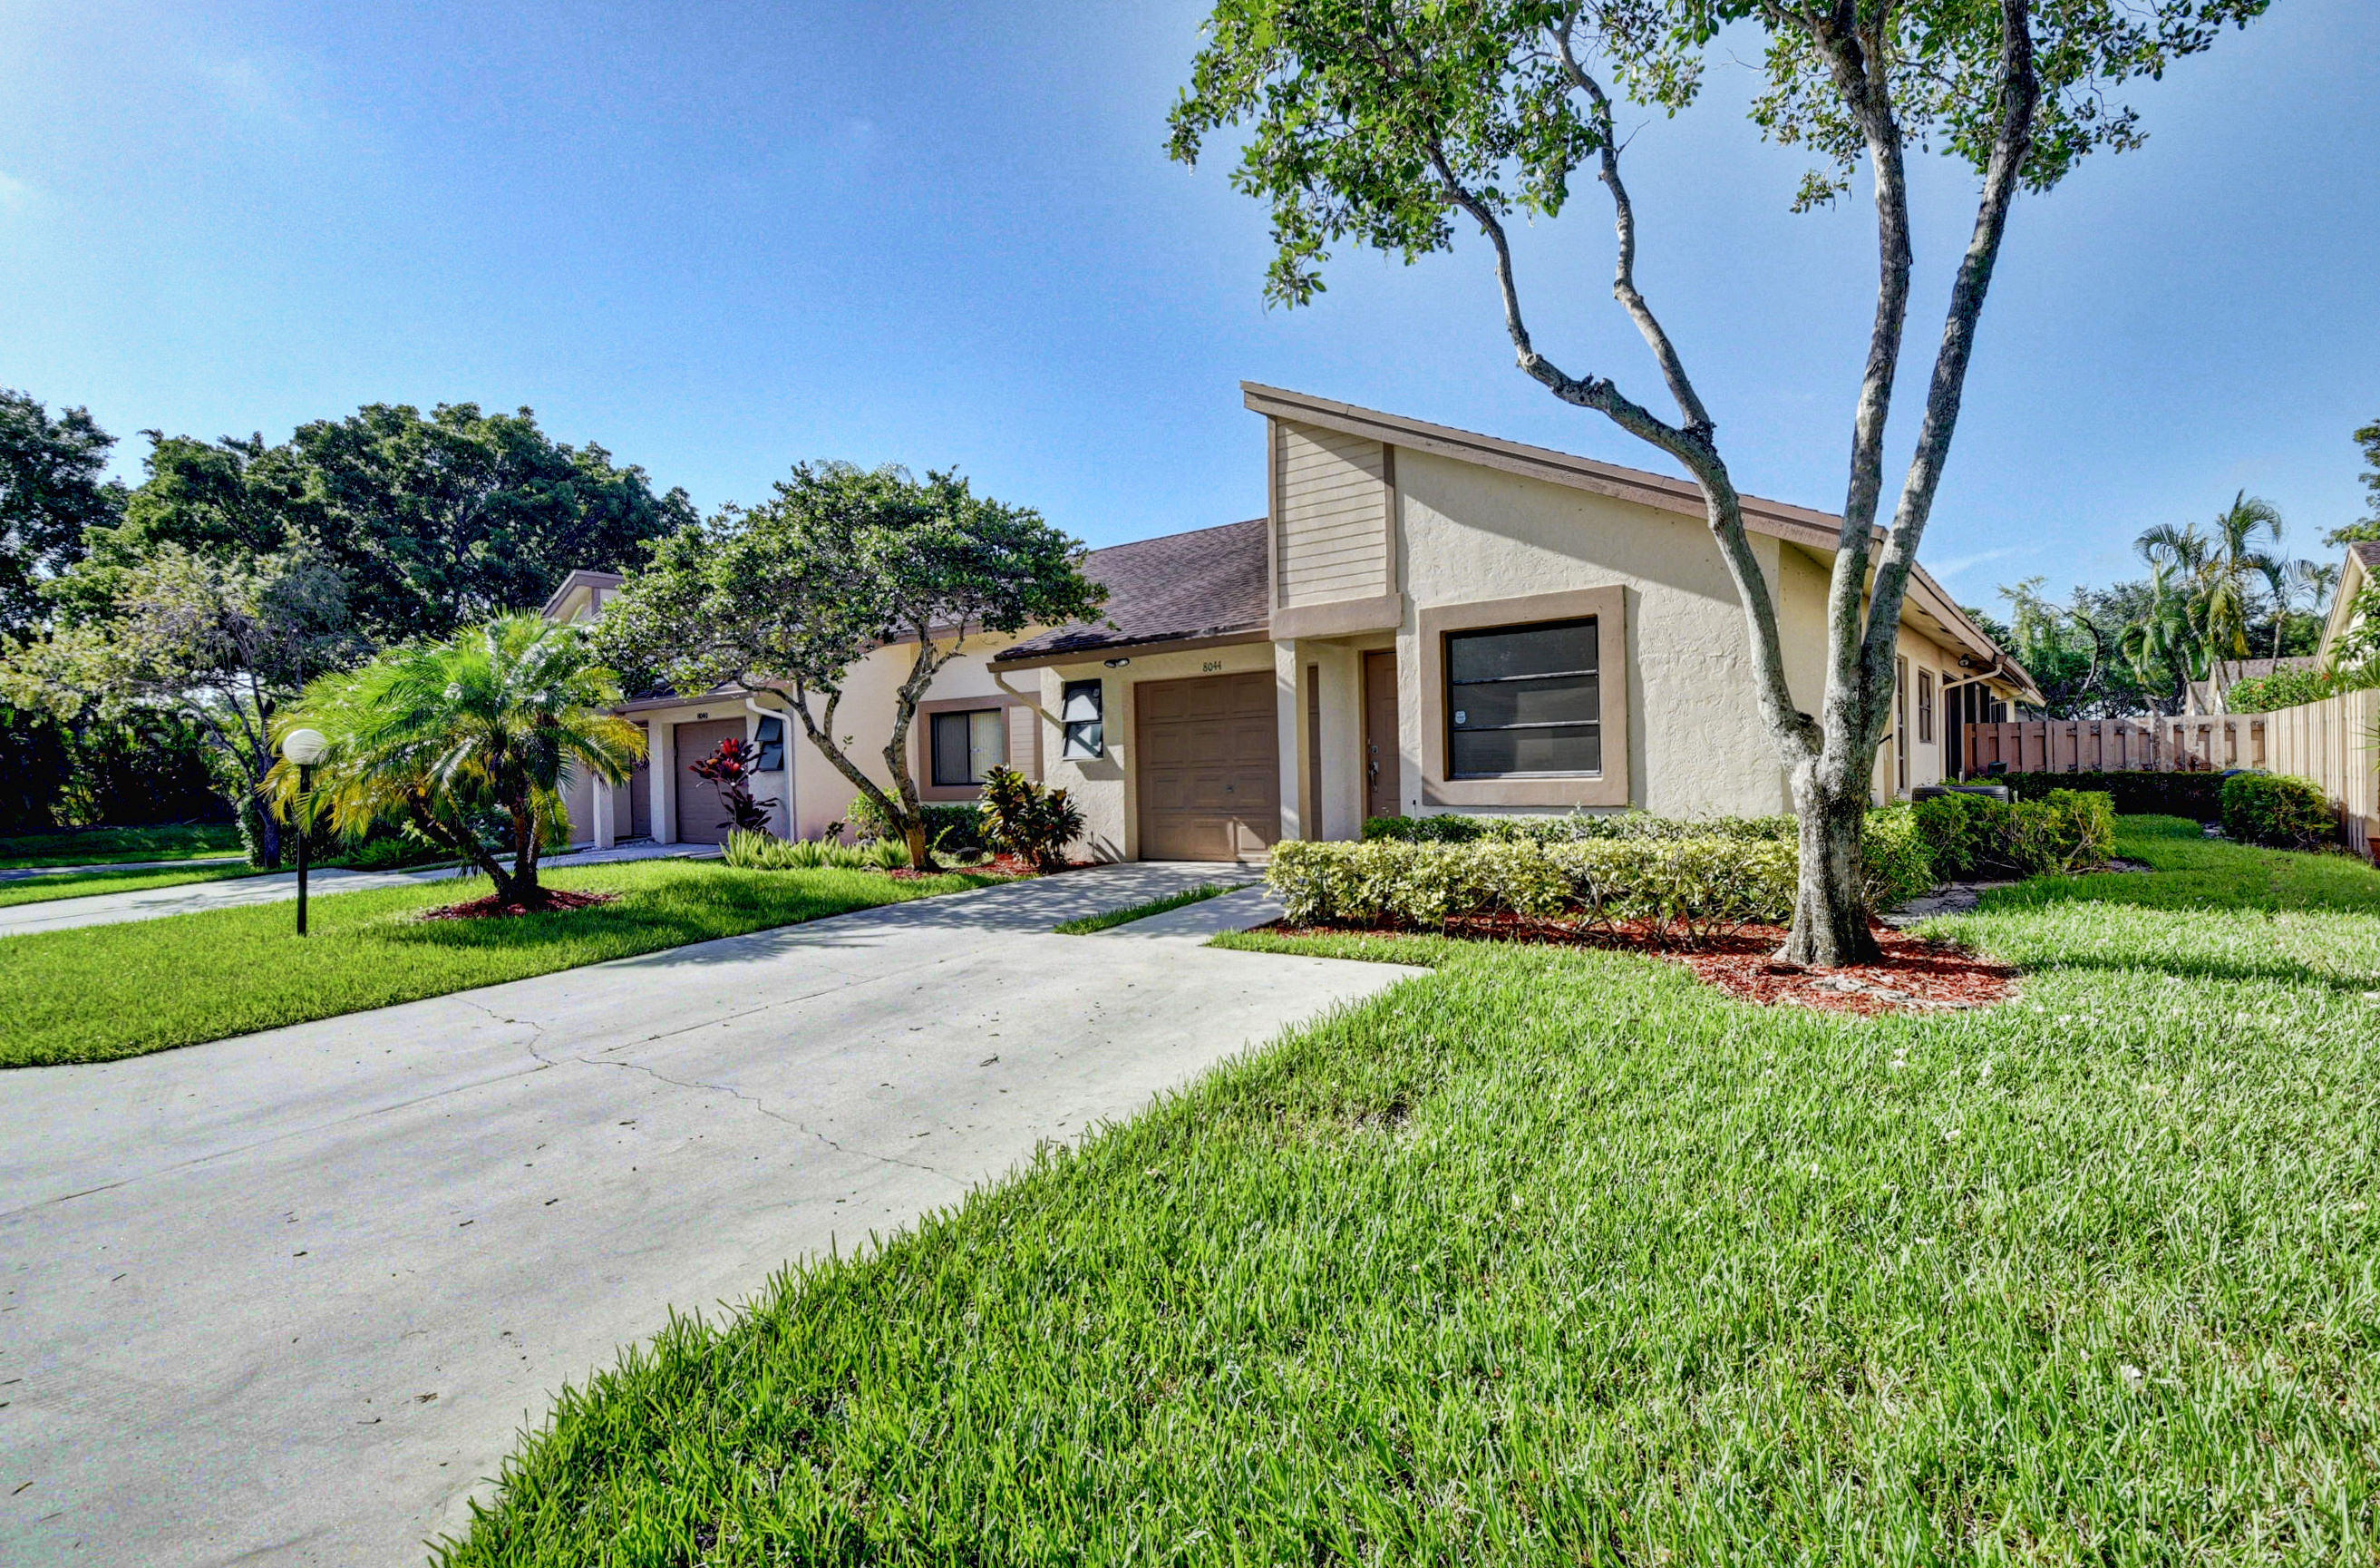 8044 Hiddenview Terrace #b Boca Raton, FL 33496